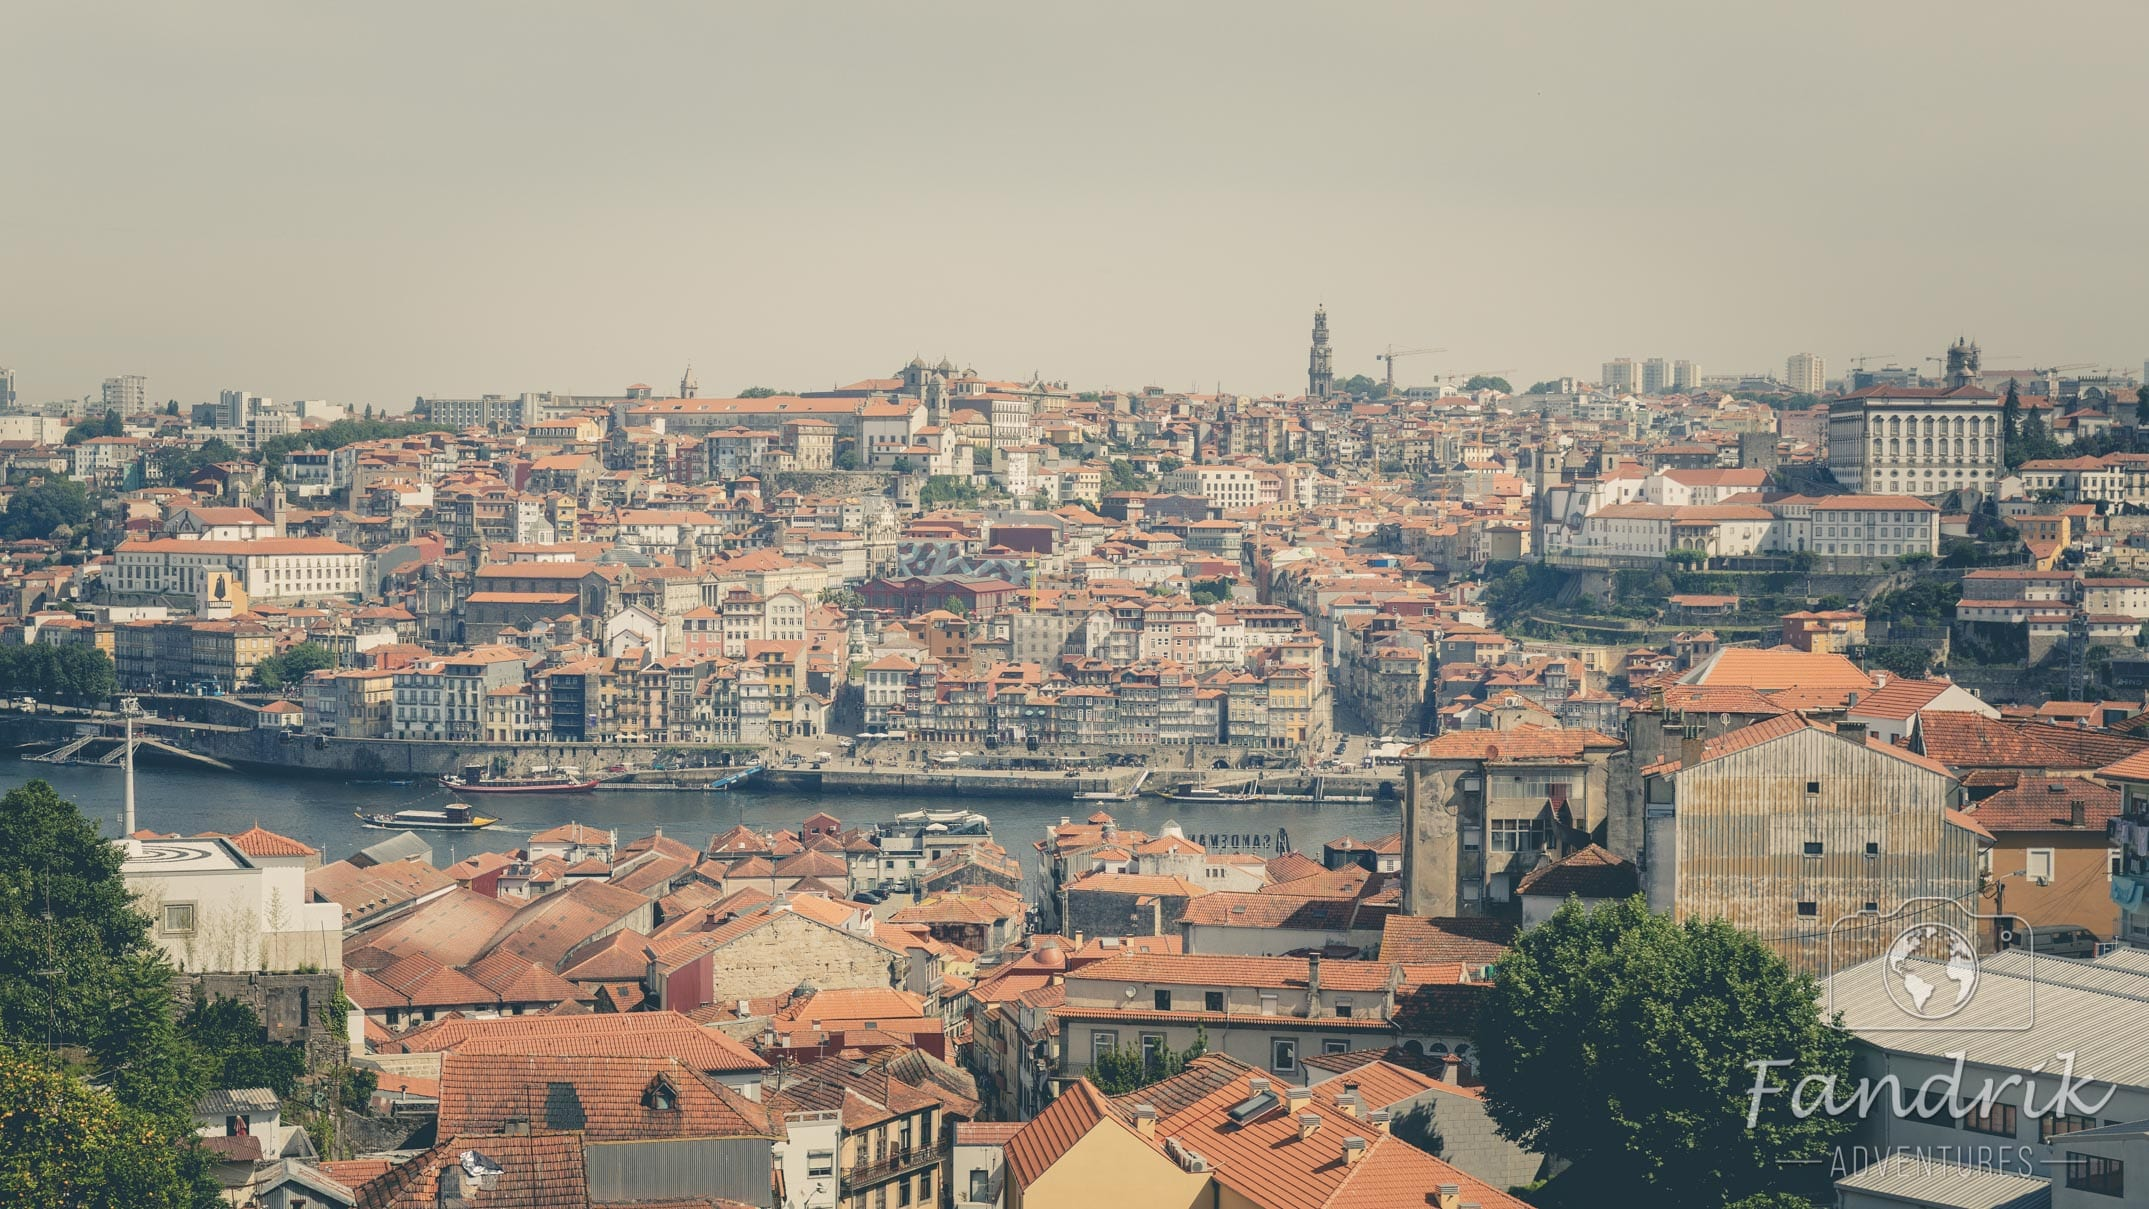 A fascinating view of the old town of Porto.